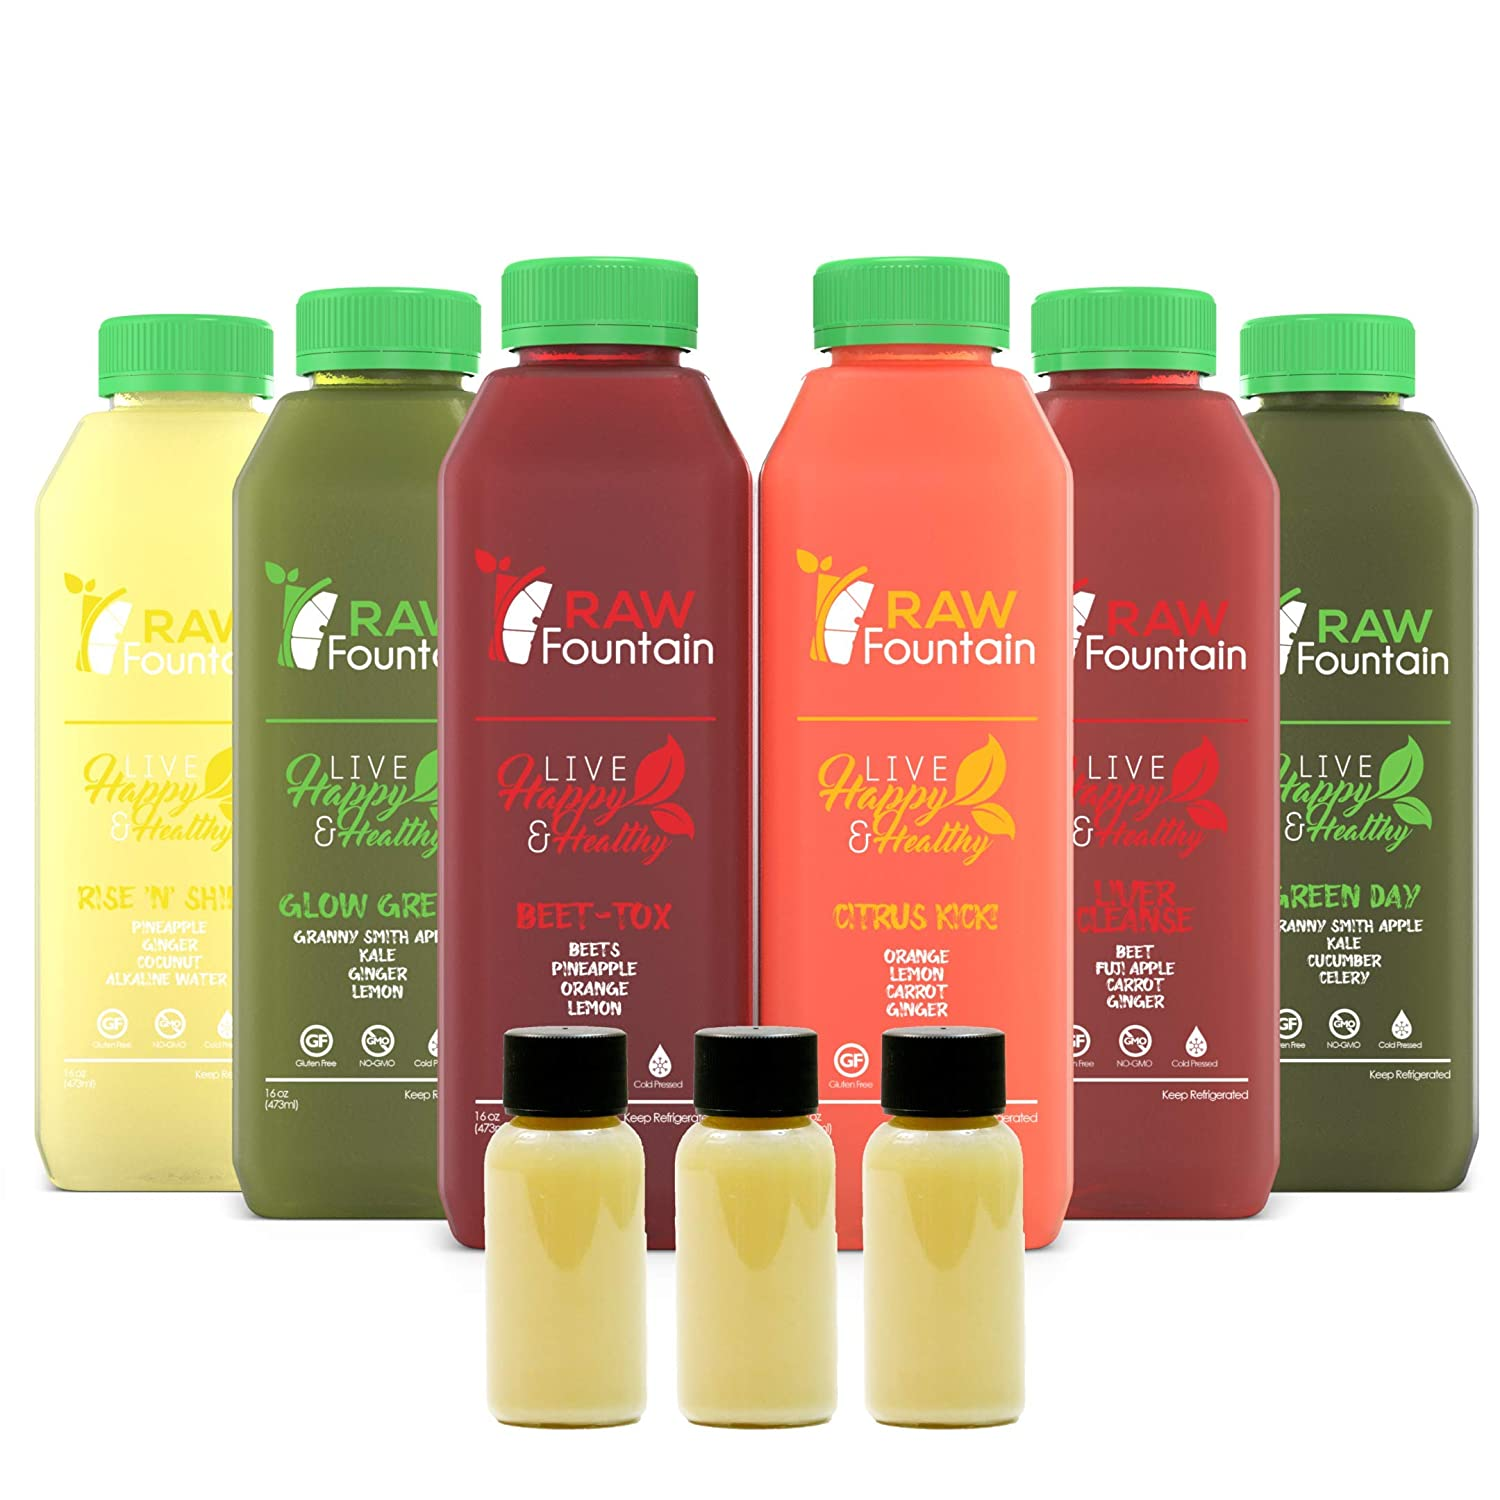 RAW Fountain 5 Day Juice Cleanse, 100 Natural Raw, Cold Pressed Fruit Vegetable Juices, Detox Cleanse Weight Loss, 30 Bottles, 16oz 5 Ginger Shots